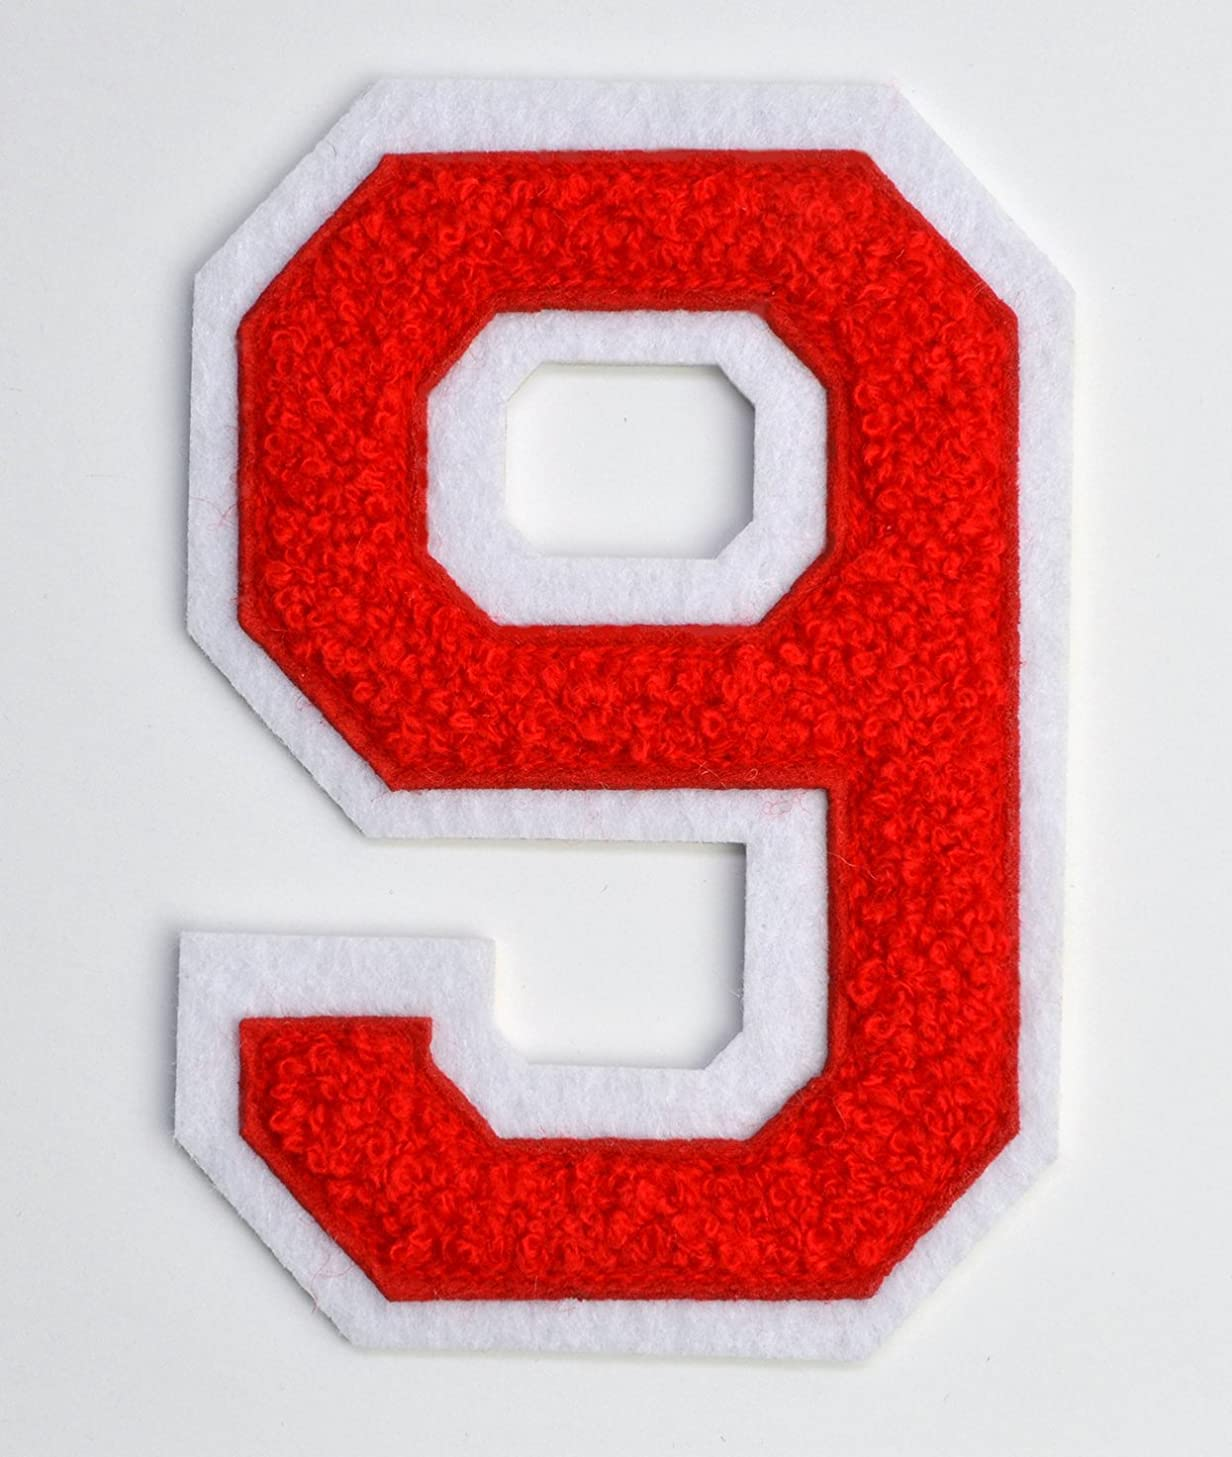 Varsity Number Patches - Red Embroidered Chenille Letterman Patch - 4 1/2 inch Iron-On Numbers (Red, Number 9 Patch)